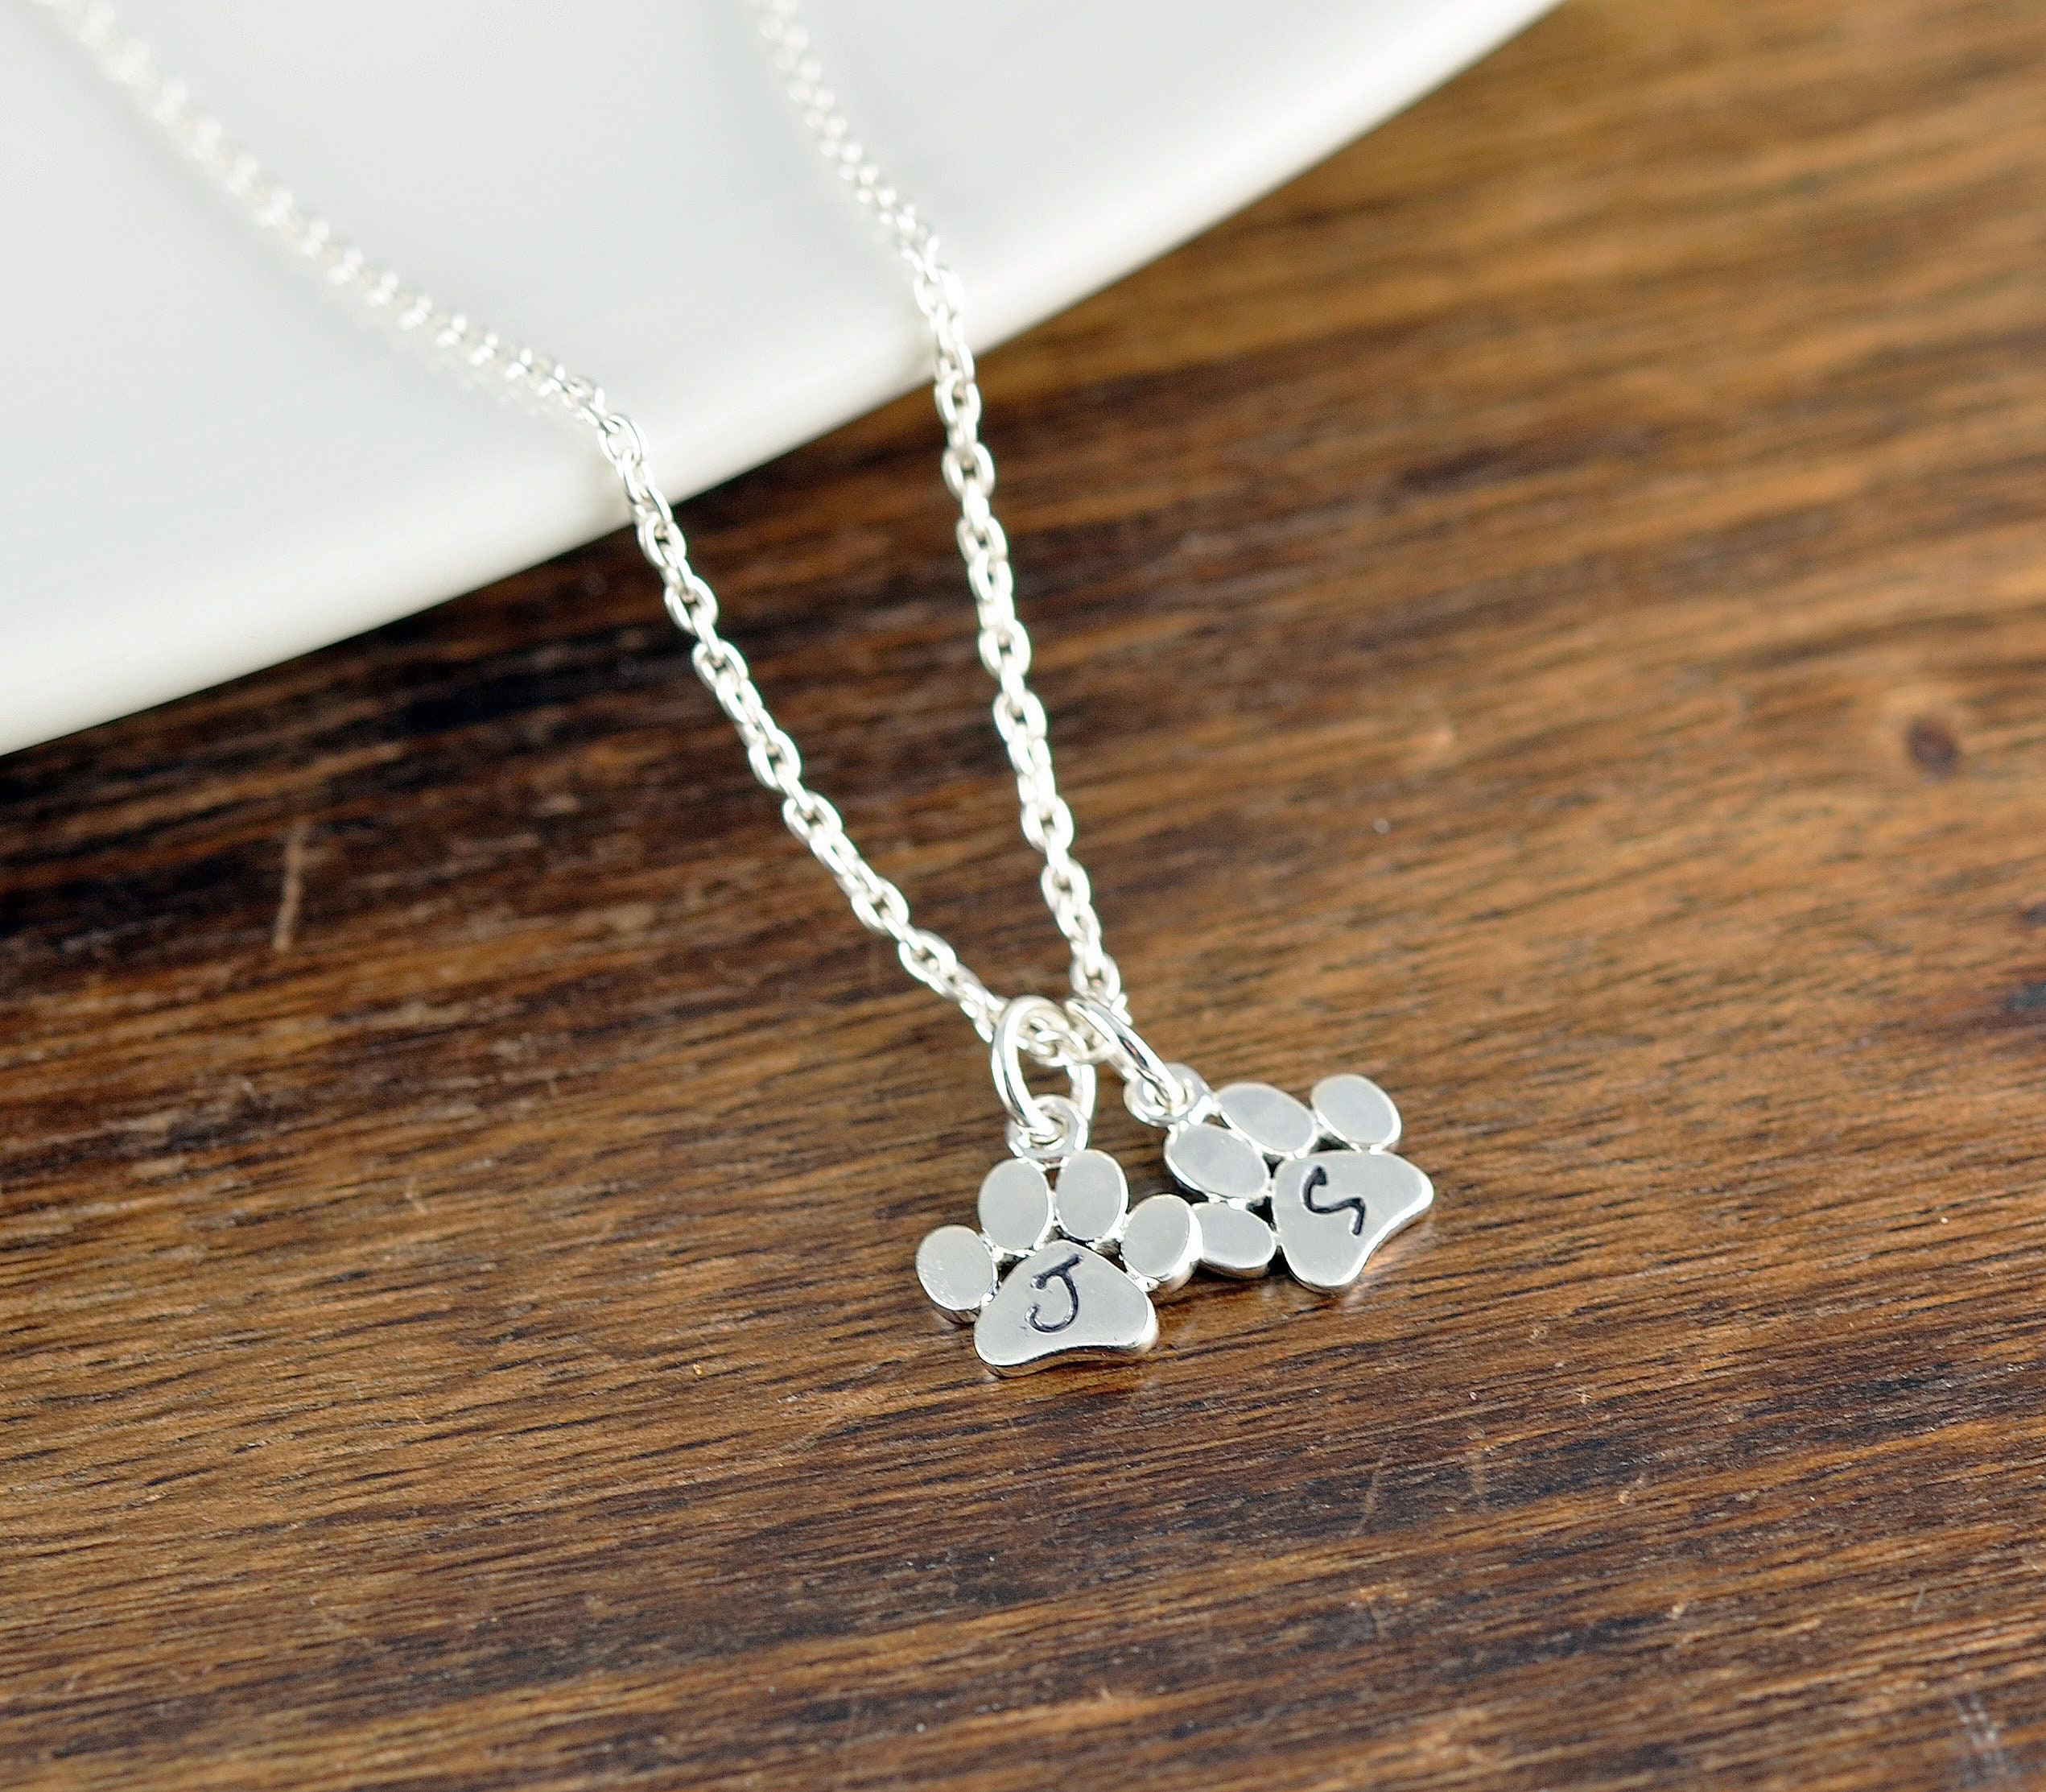 silver item lover and star alloy pendant necklace letter jewelry charmming zoom moon